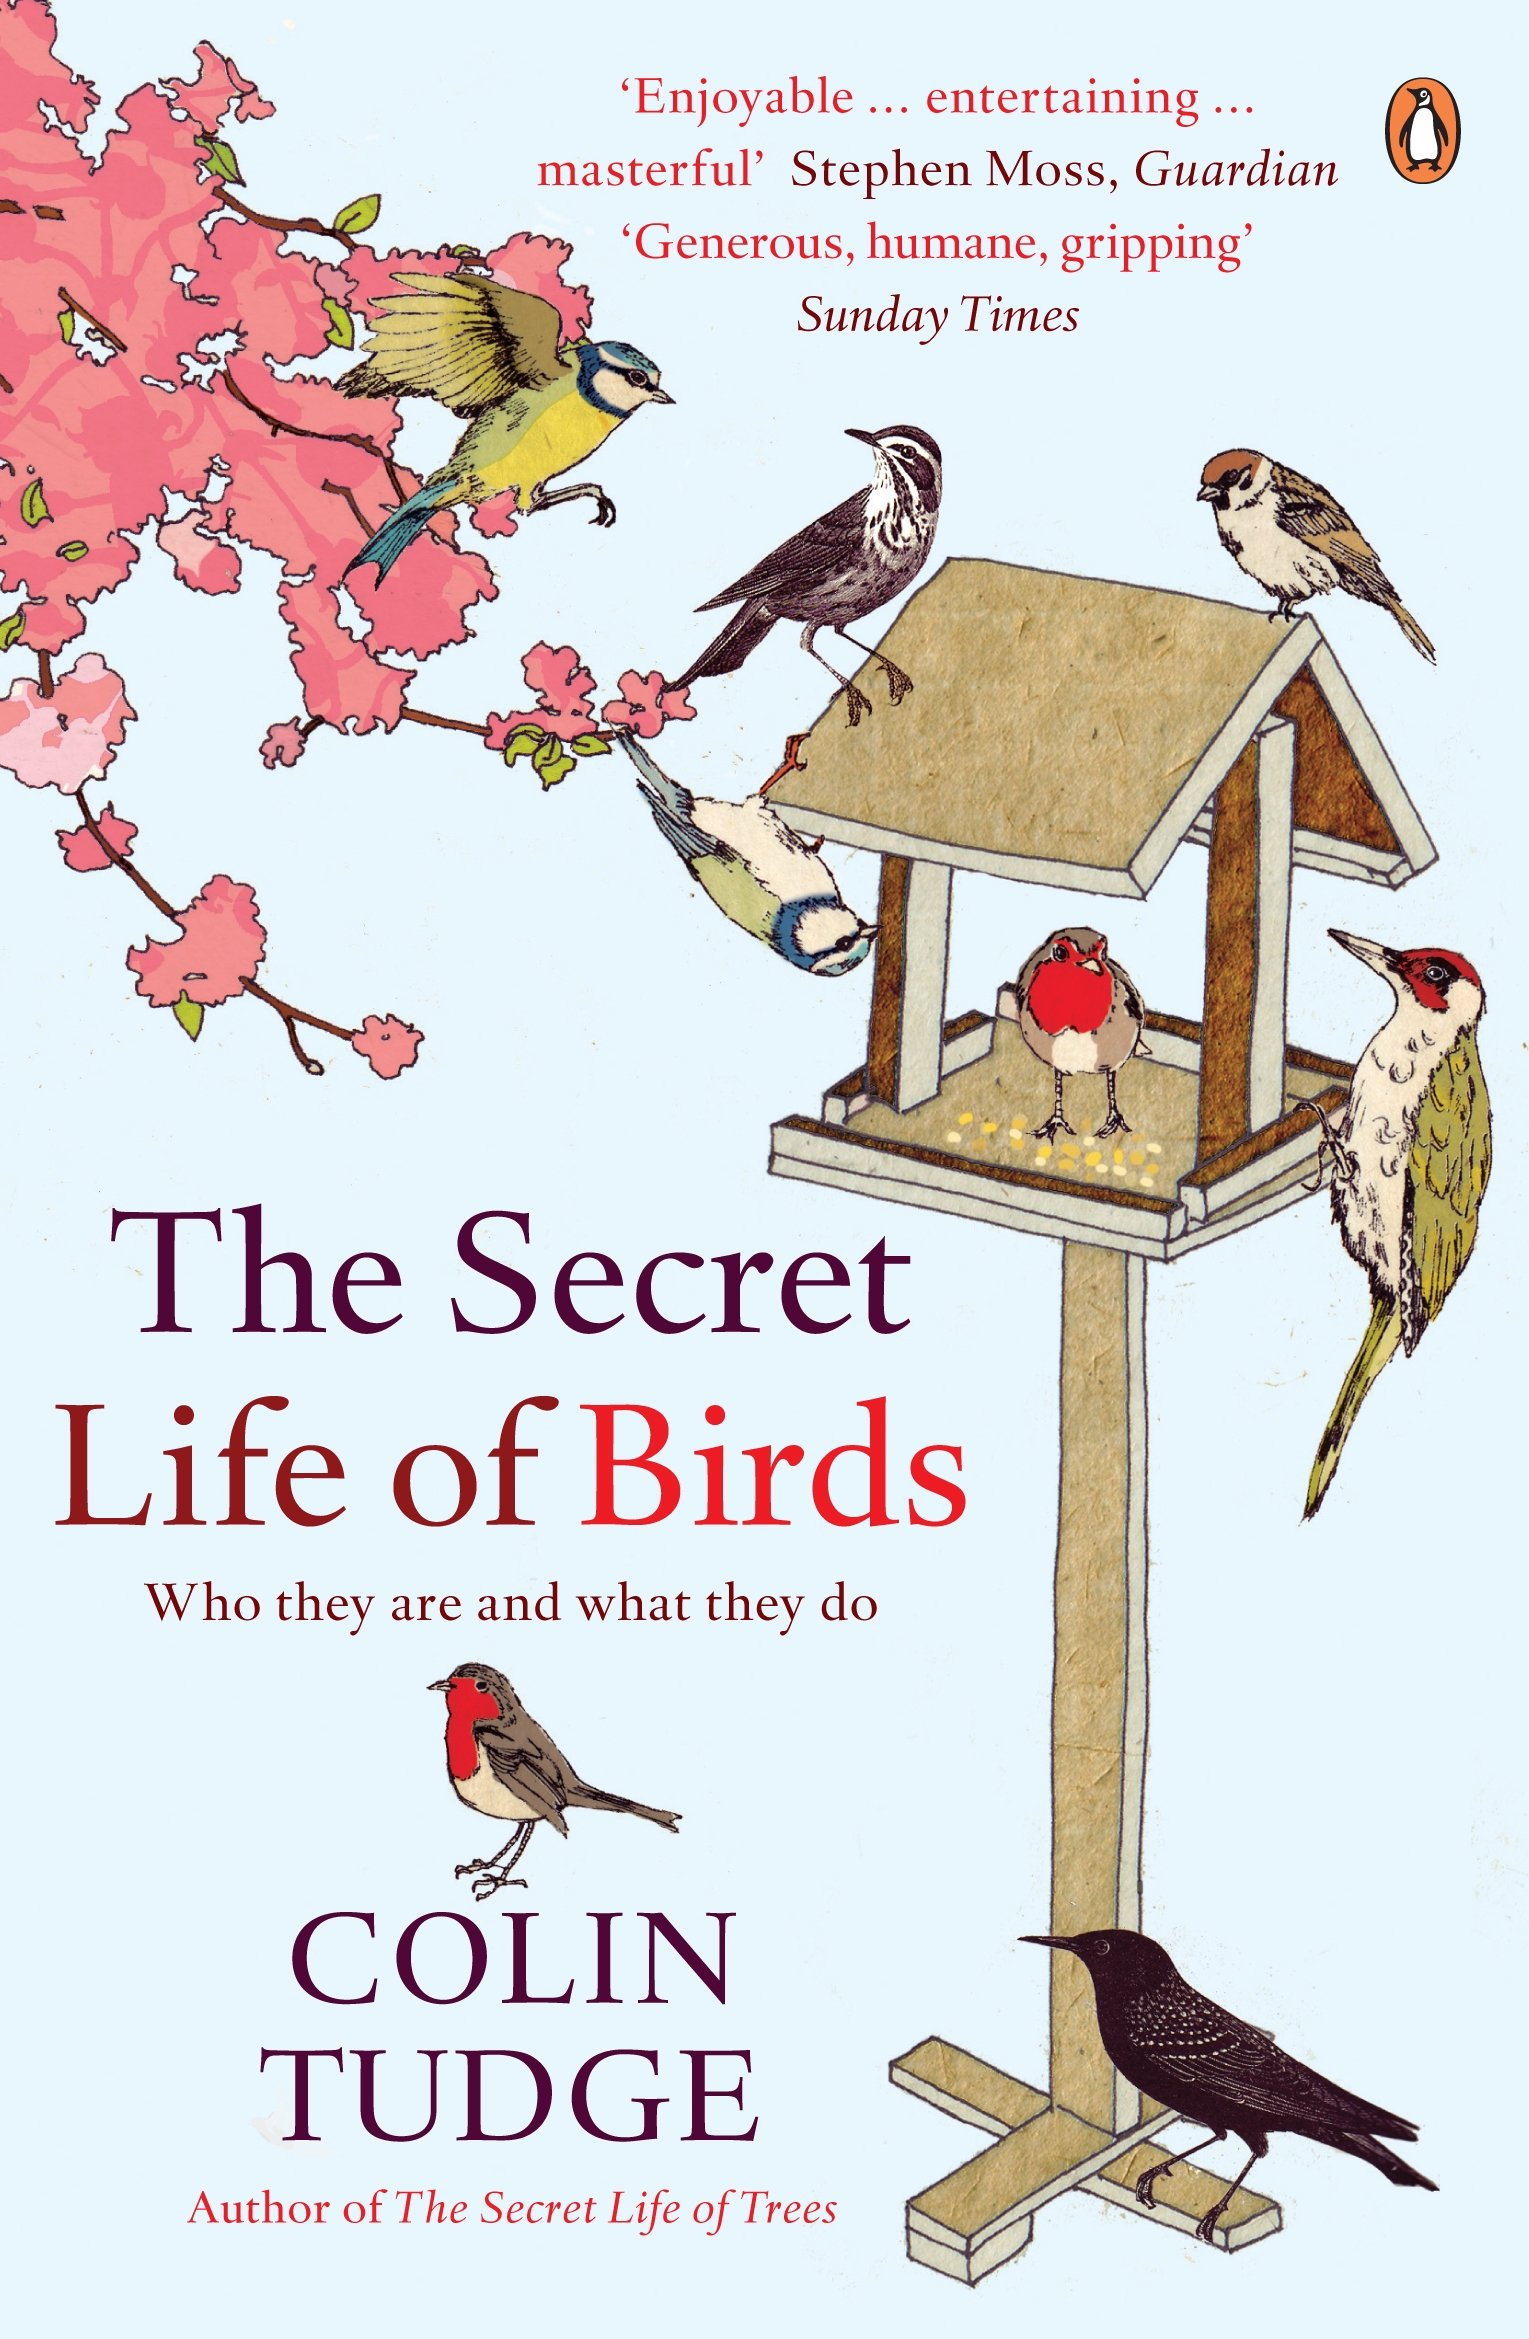 The Secret Life of Birds: Who they are and what they do: Amazon.co.uk:  Colin Tudge: 9780141034768: Books